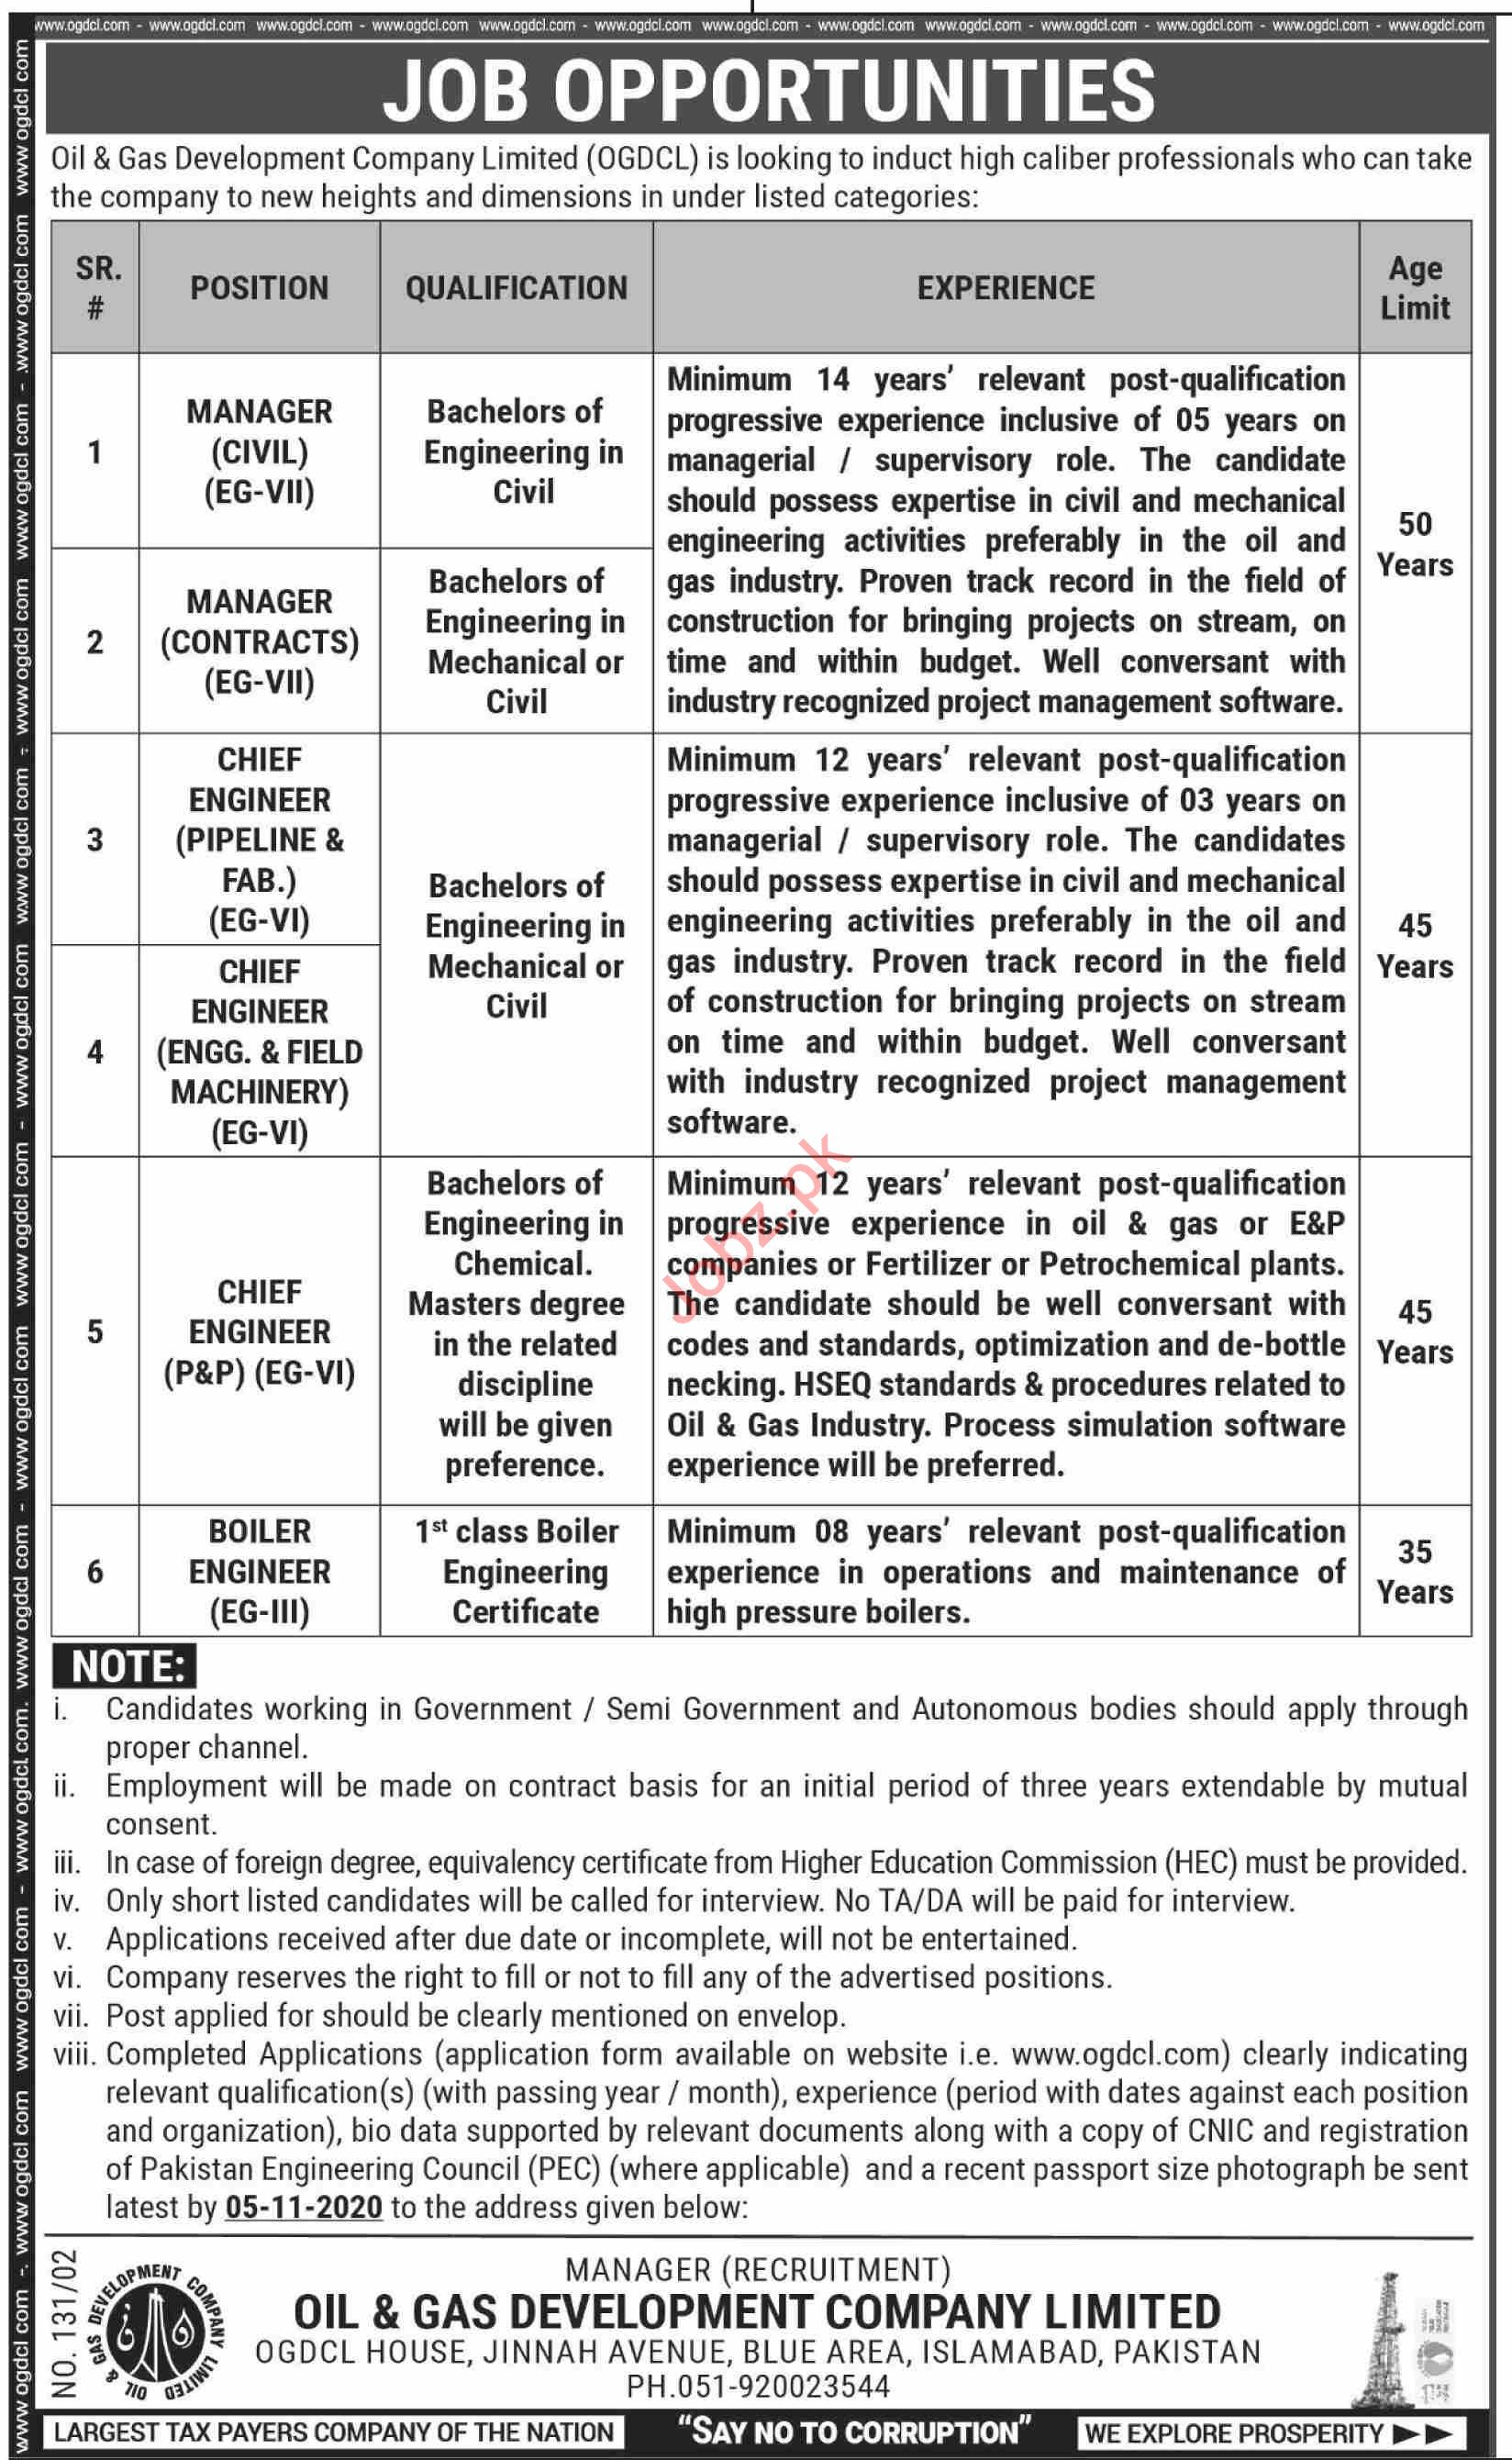 OGDCL Islamabad Jobs 2020 for Civil Manager & Engineer